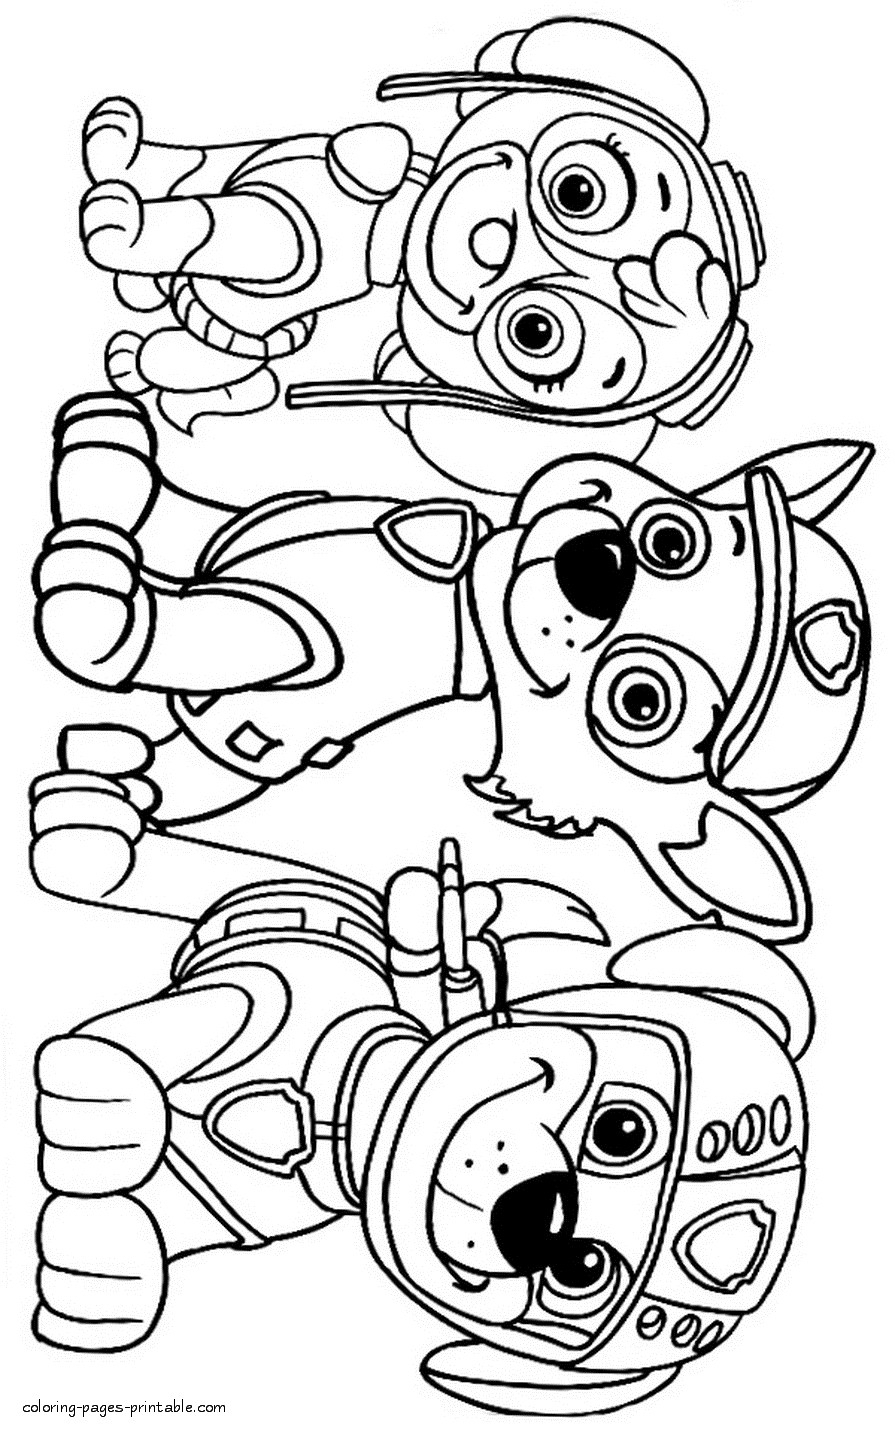 coloring images paw patrol transparent paw patrol png images colouring pages paw coloring paw patrol images